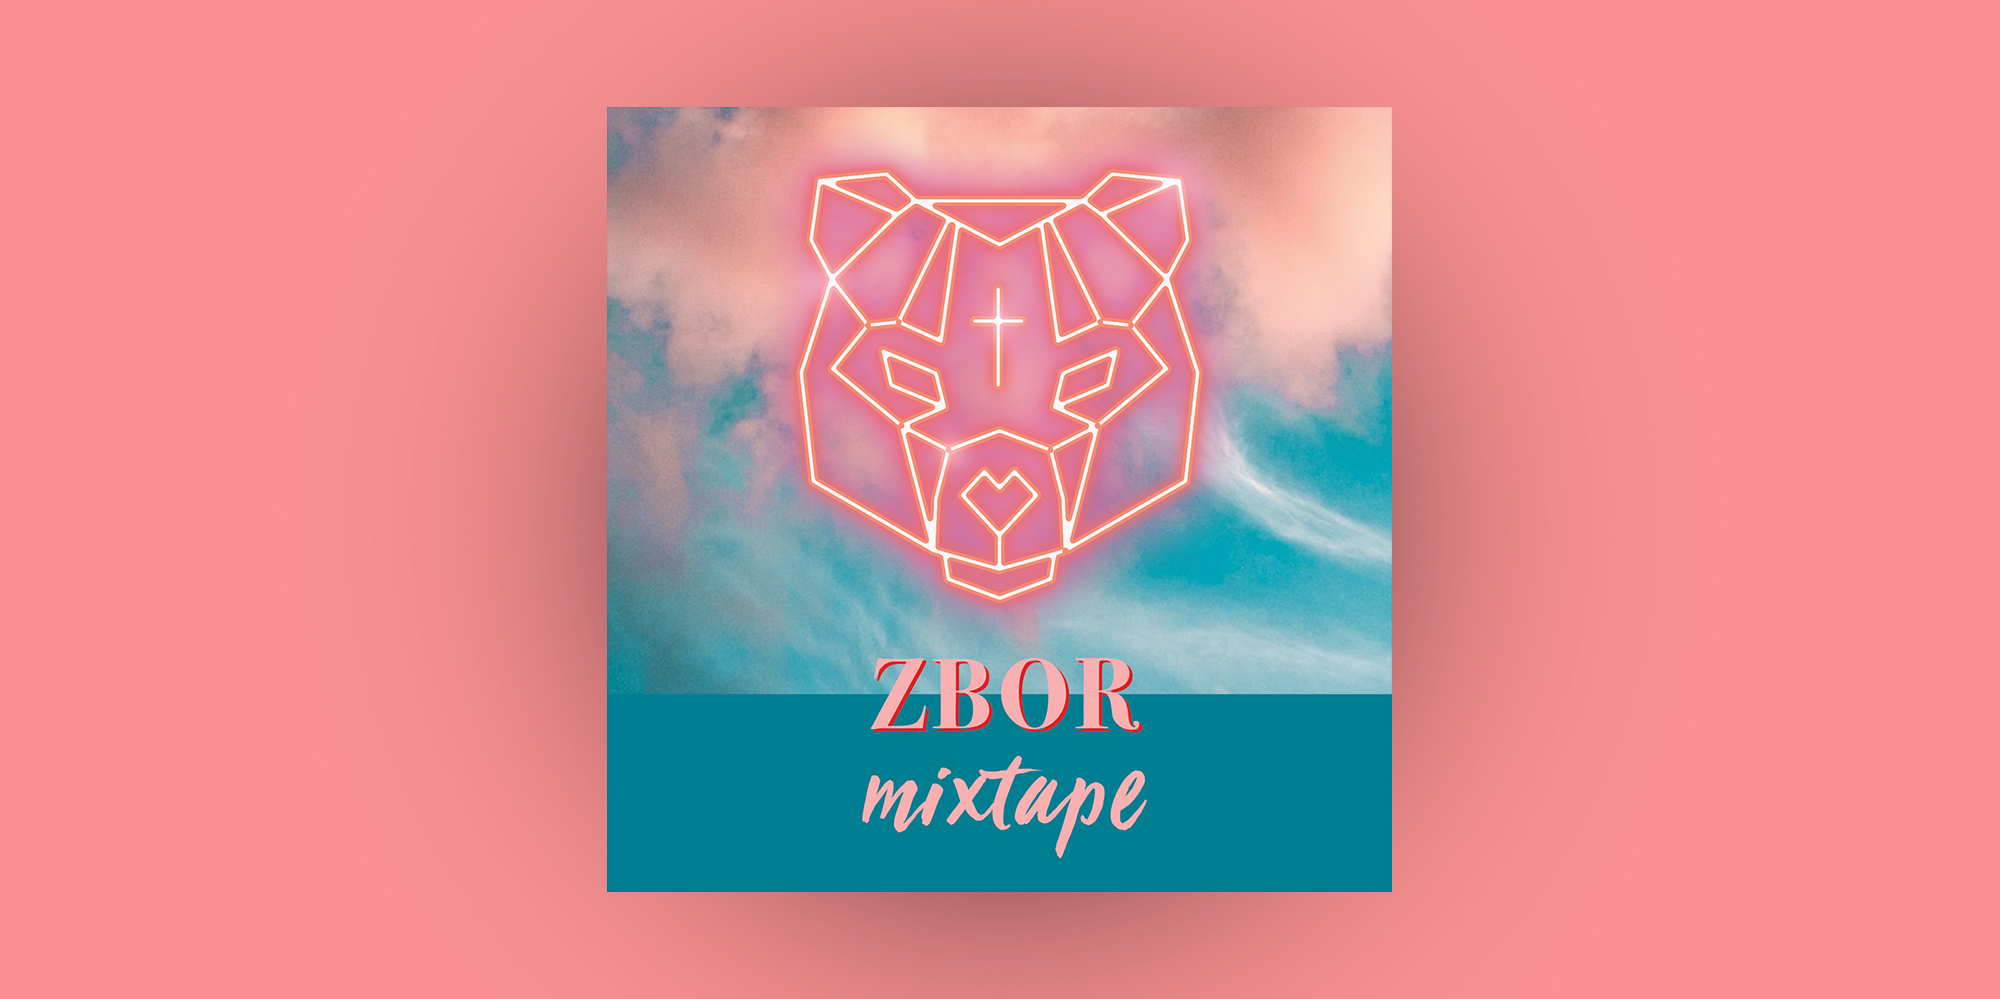 zbor-mixtape-spotify-bro-bear-blog-hero.jpg